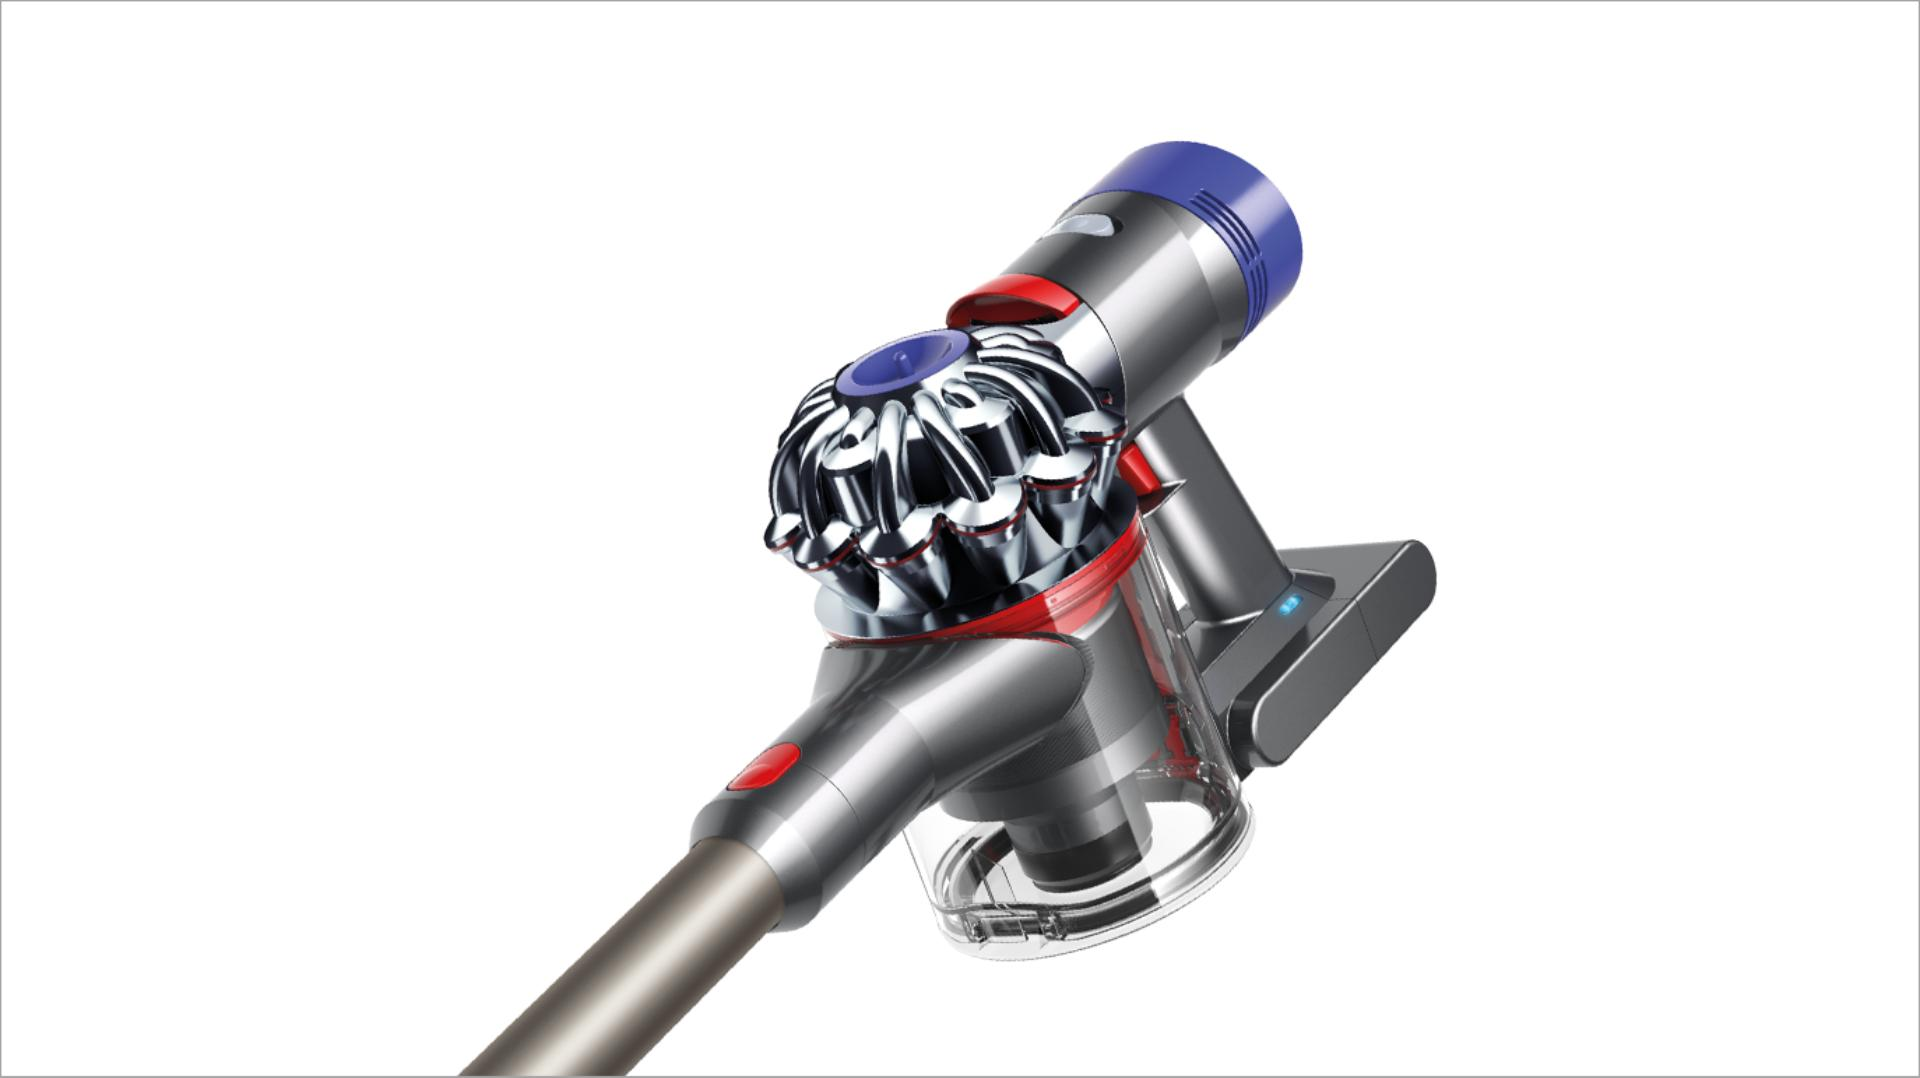 Dyson V8™ vacuum cleaner close up